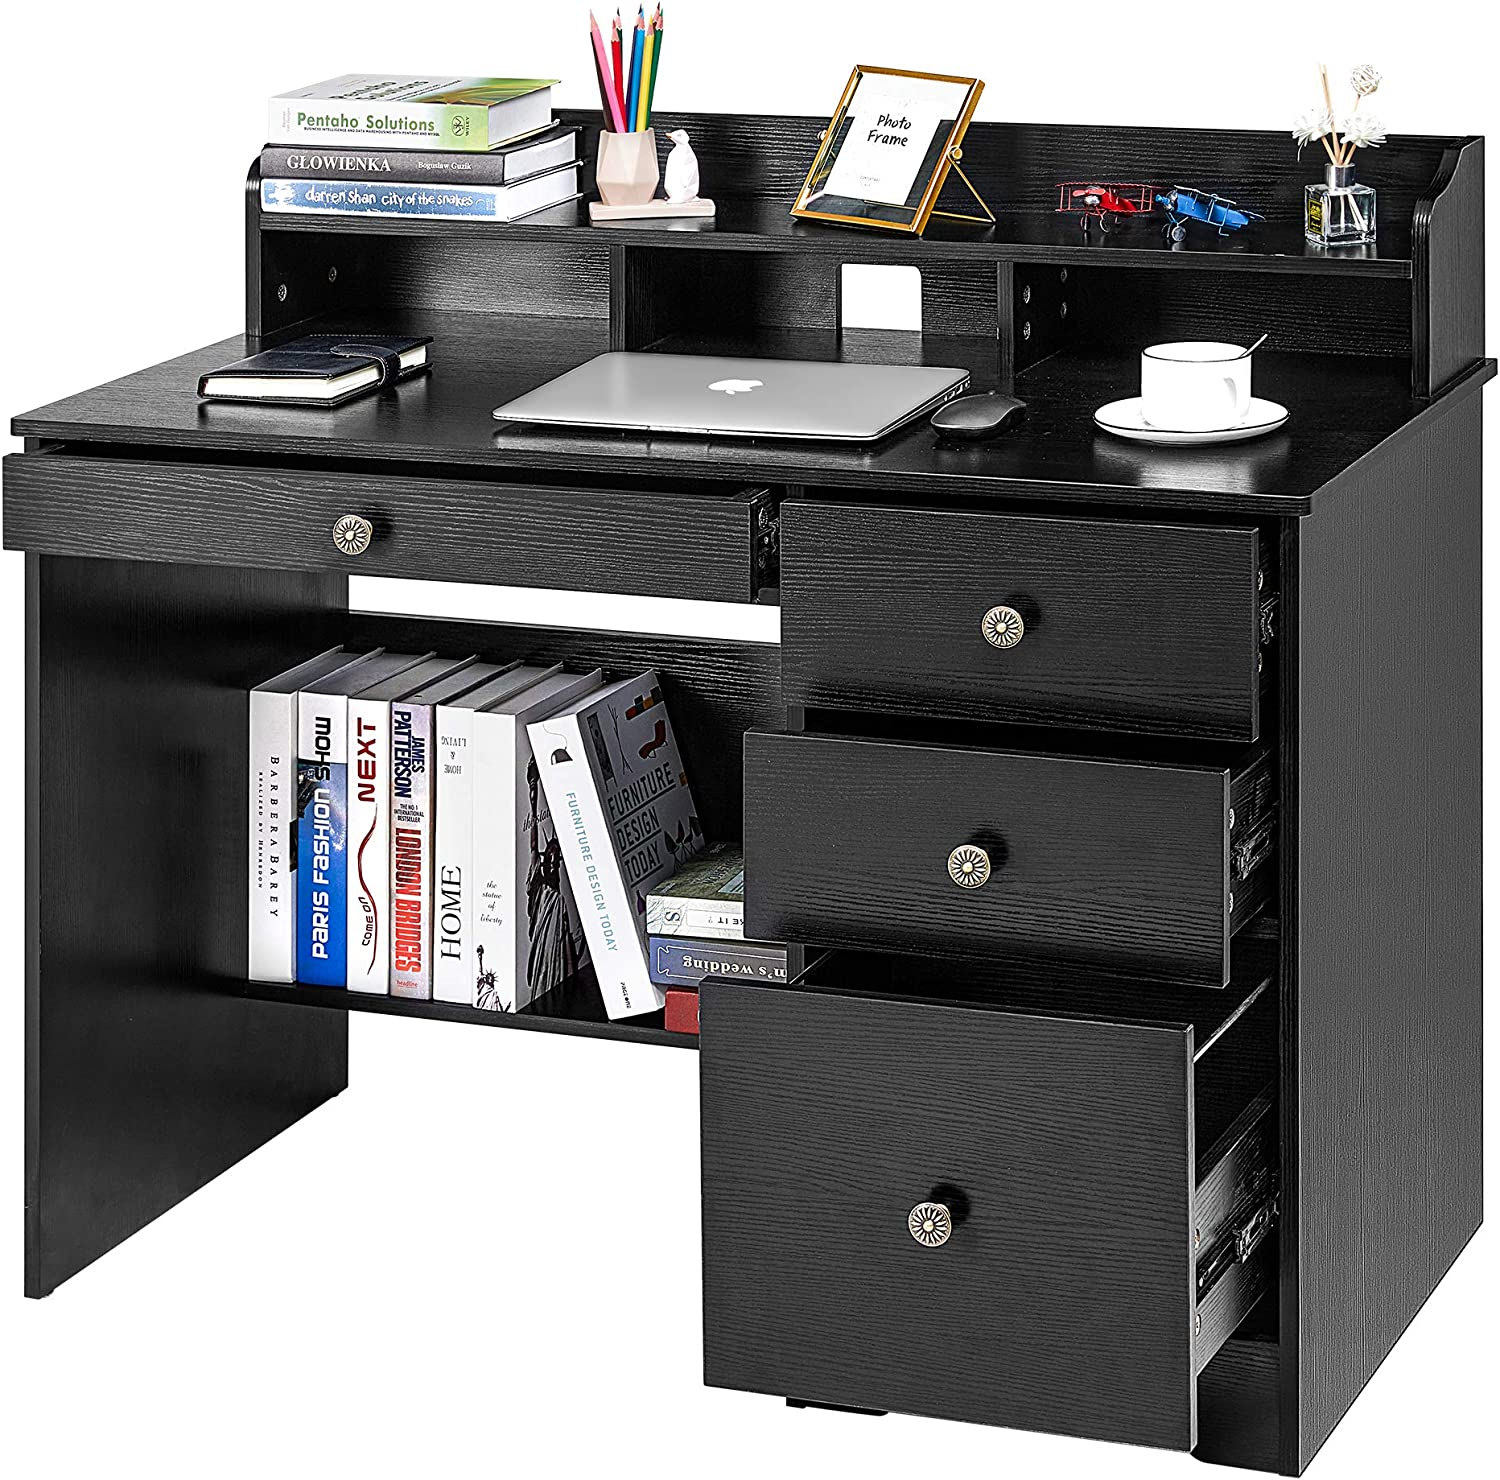 Kealive Computer Desk with 4 Drawers and Hutch Shelf, Wood Frame Home Office Desk with Spacious Desktop, Vintage Style Writing Study Table PC Laptop Notebook Desk, Black